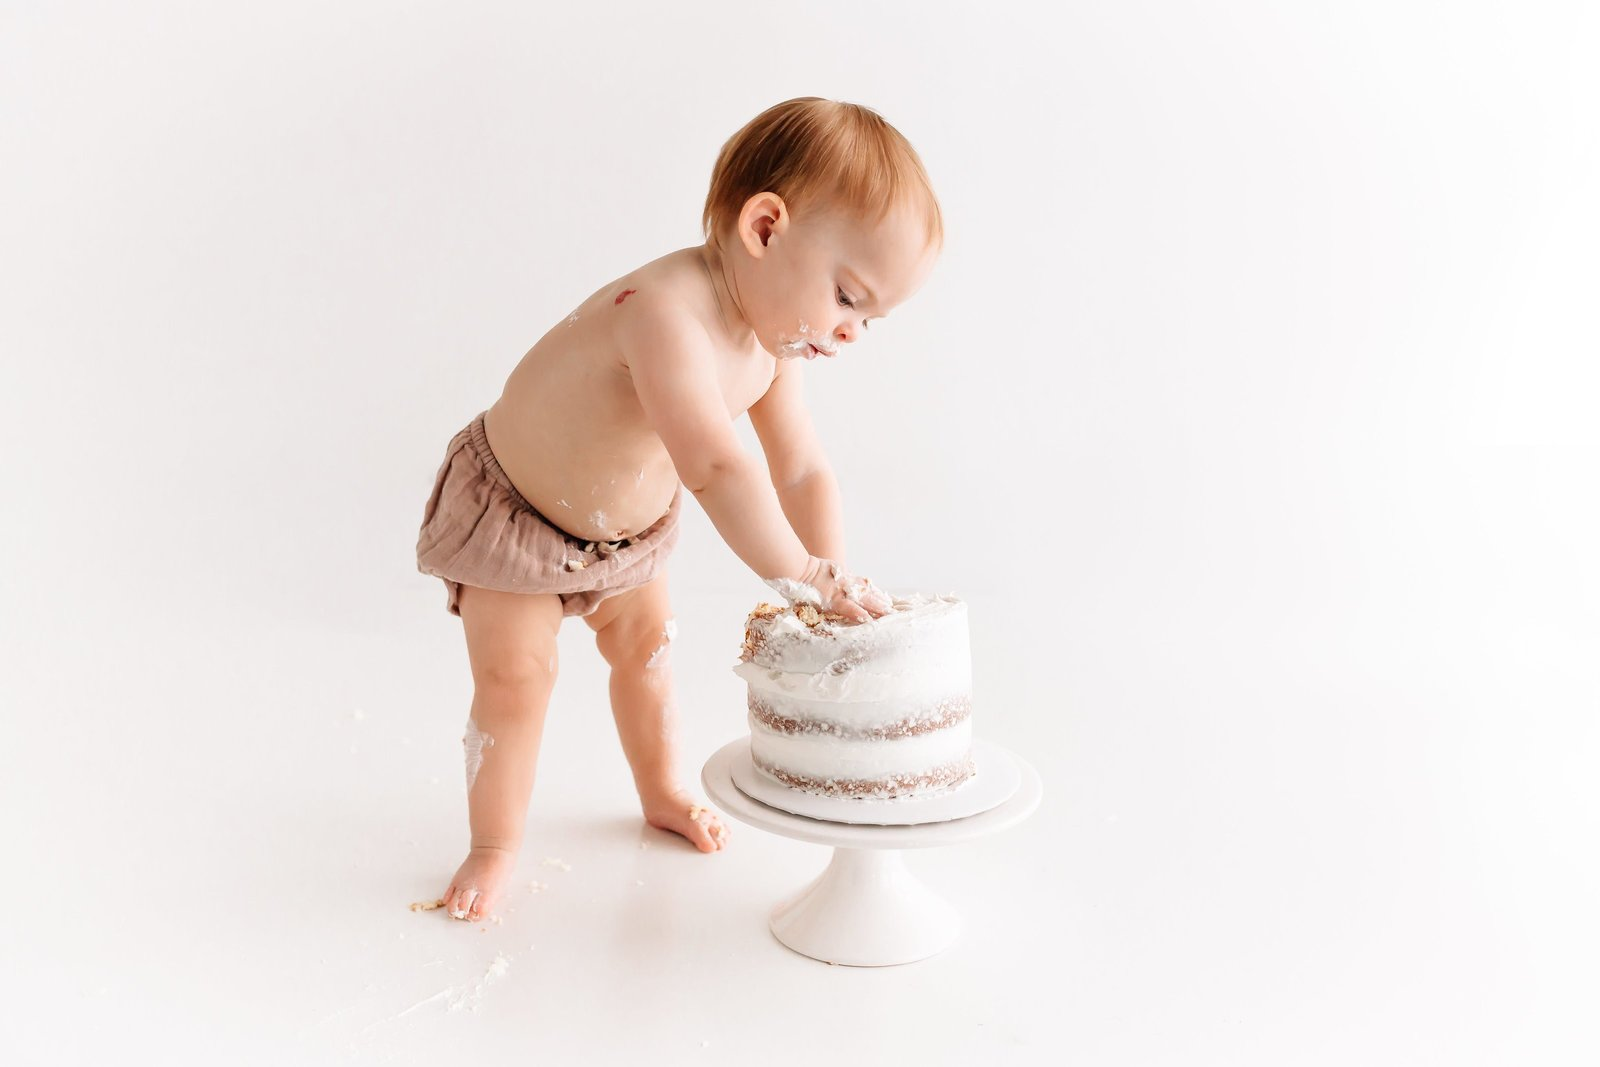 St_Louis_Baby_Photographer_Kelly_Laramore_Photography_106